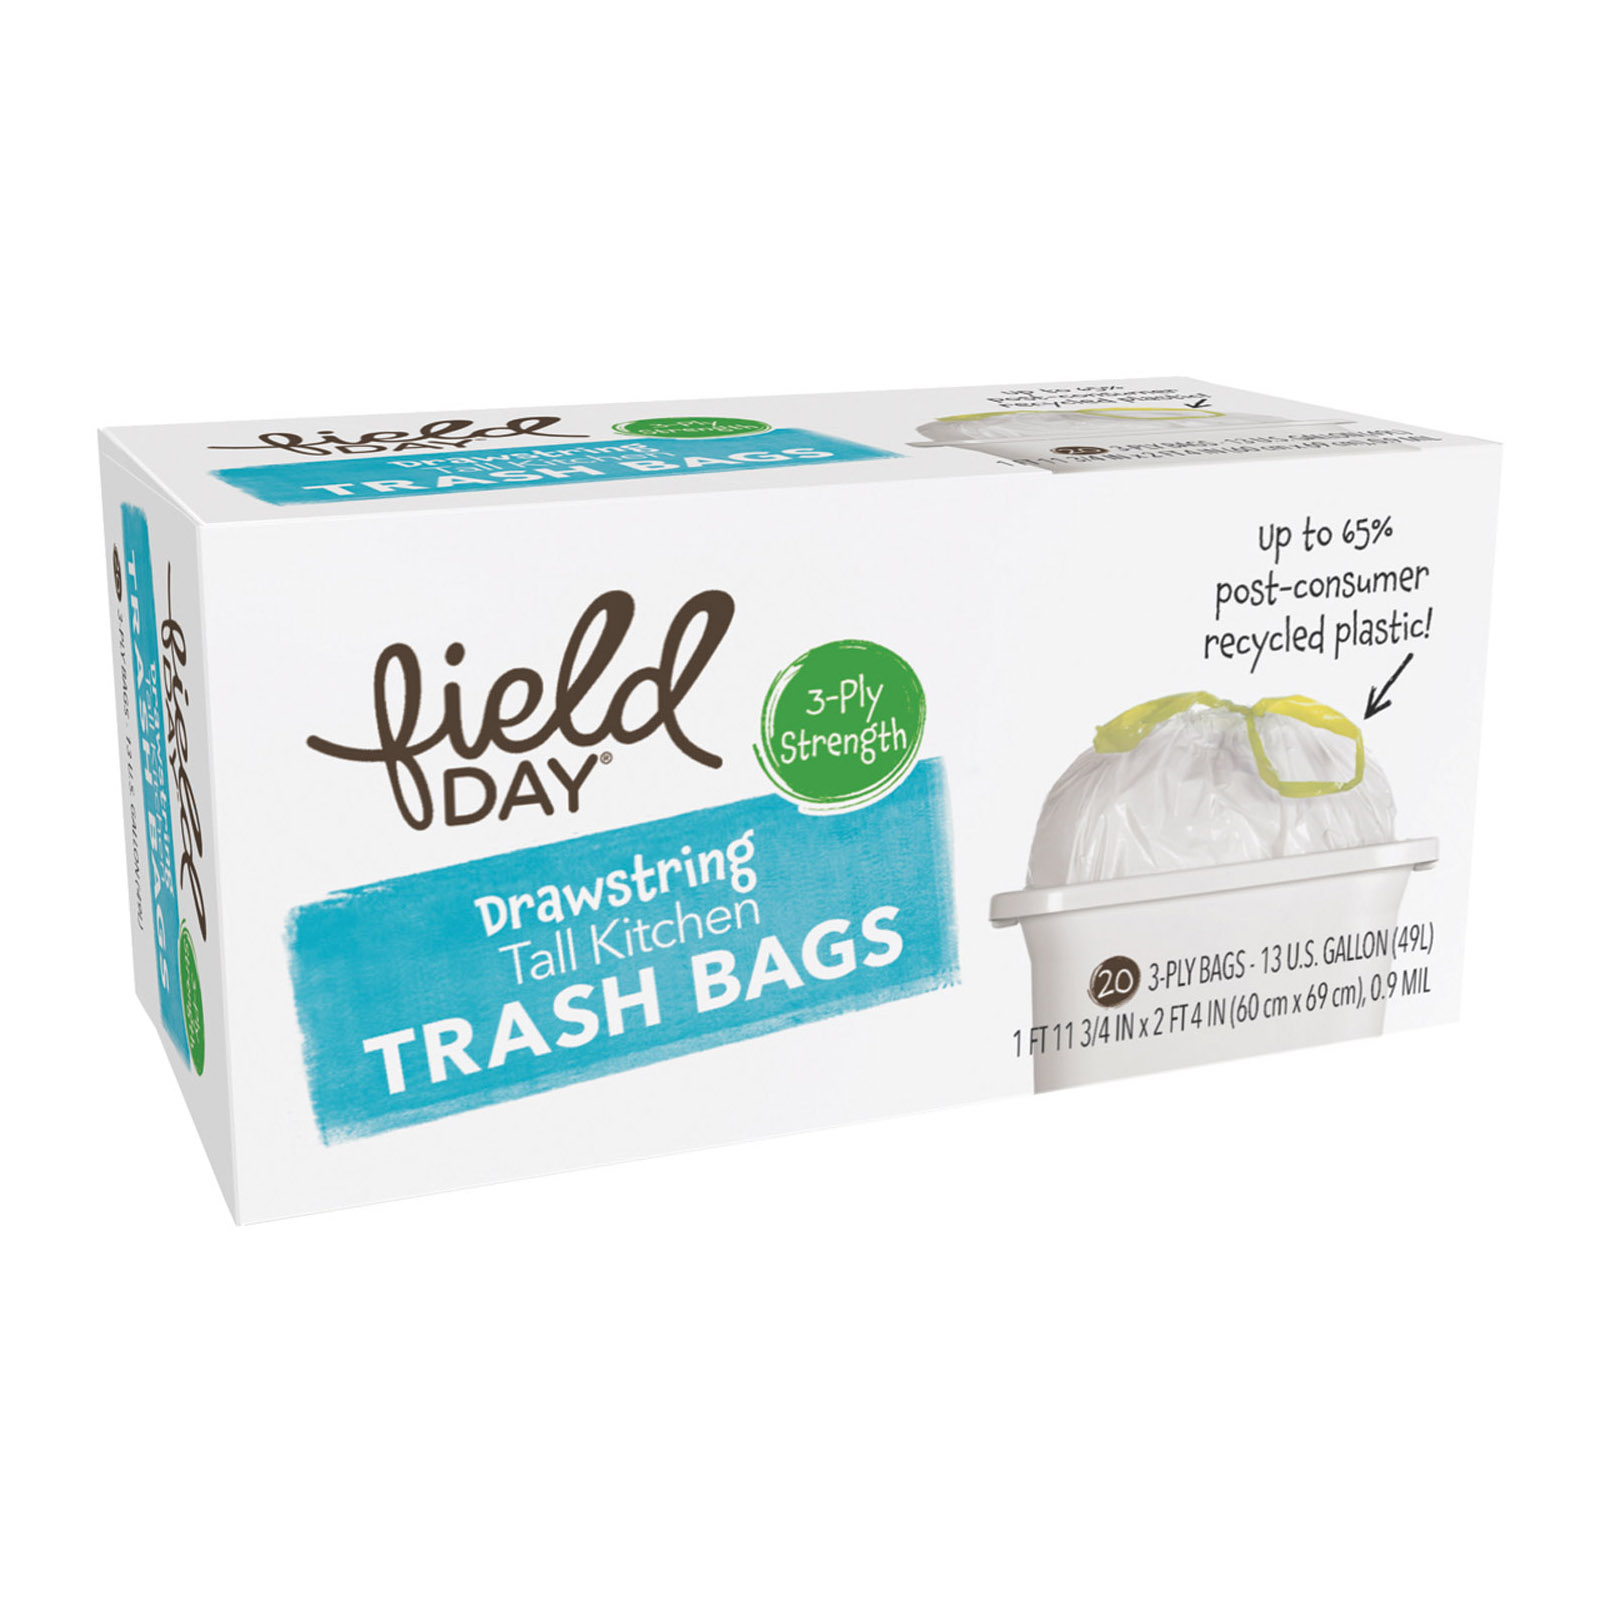 Field Day Drawstring Tall Kitchen Trash Bags - Trash Bags - 20 Count ...